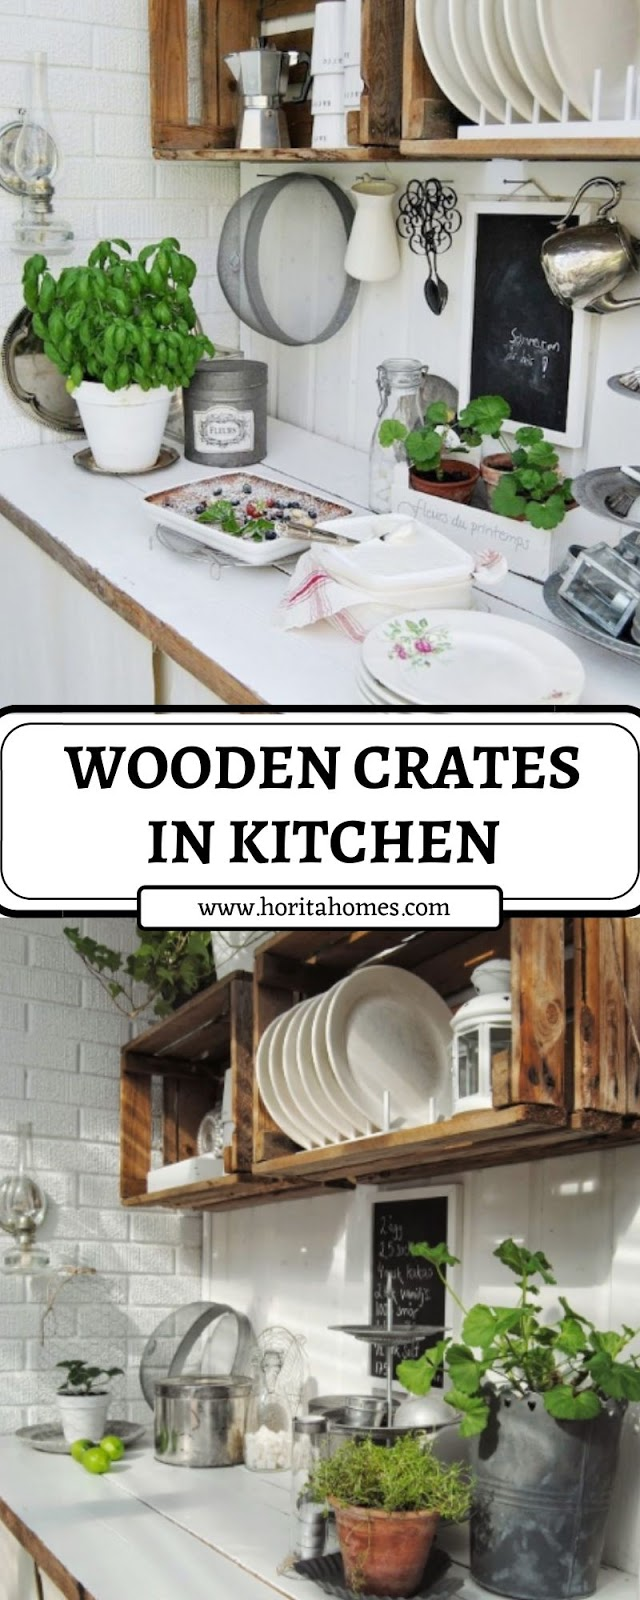 WOODEN CRATES IN KITCHEN